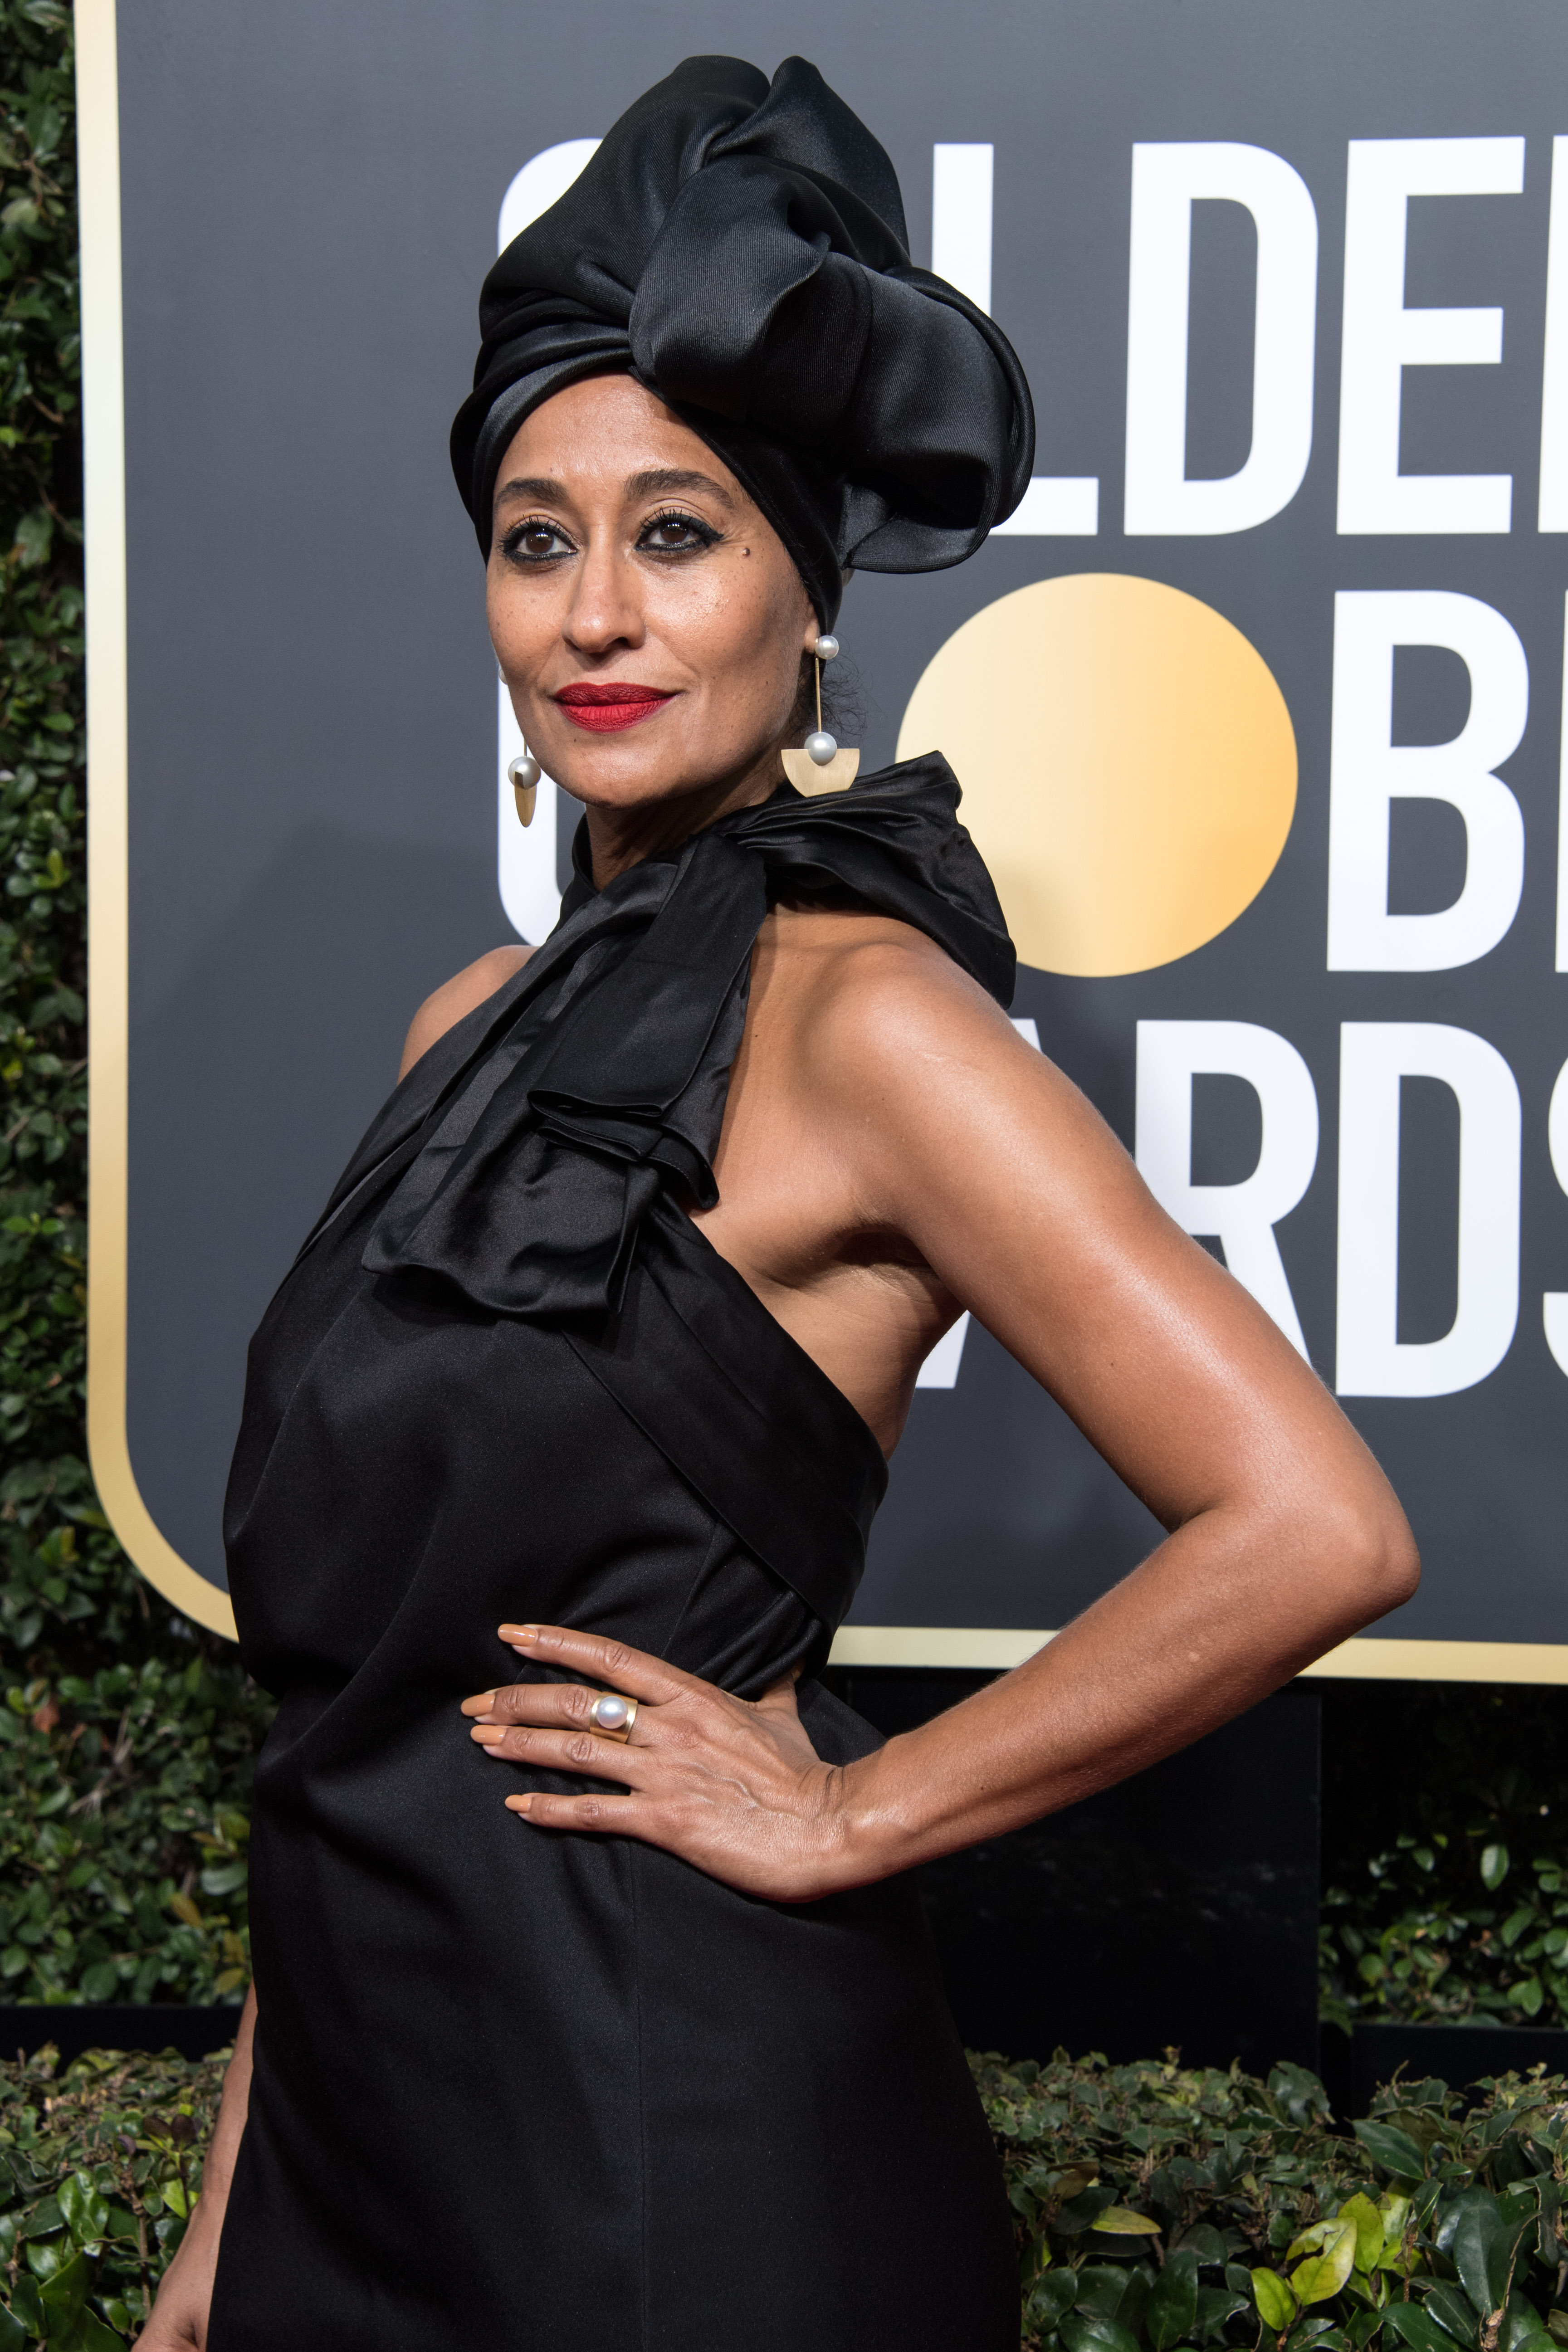 Tracee Ellis Ross arrives at the 75th Annual Golden Globe Awards at the Beverly Hilton in Beverly Hills, CA on Sunday, January 7, 2018.